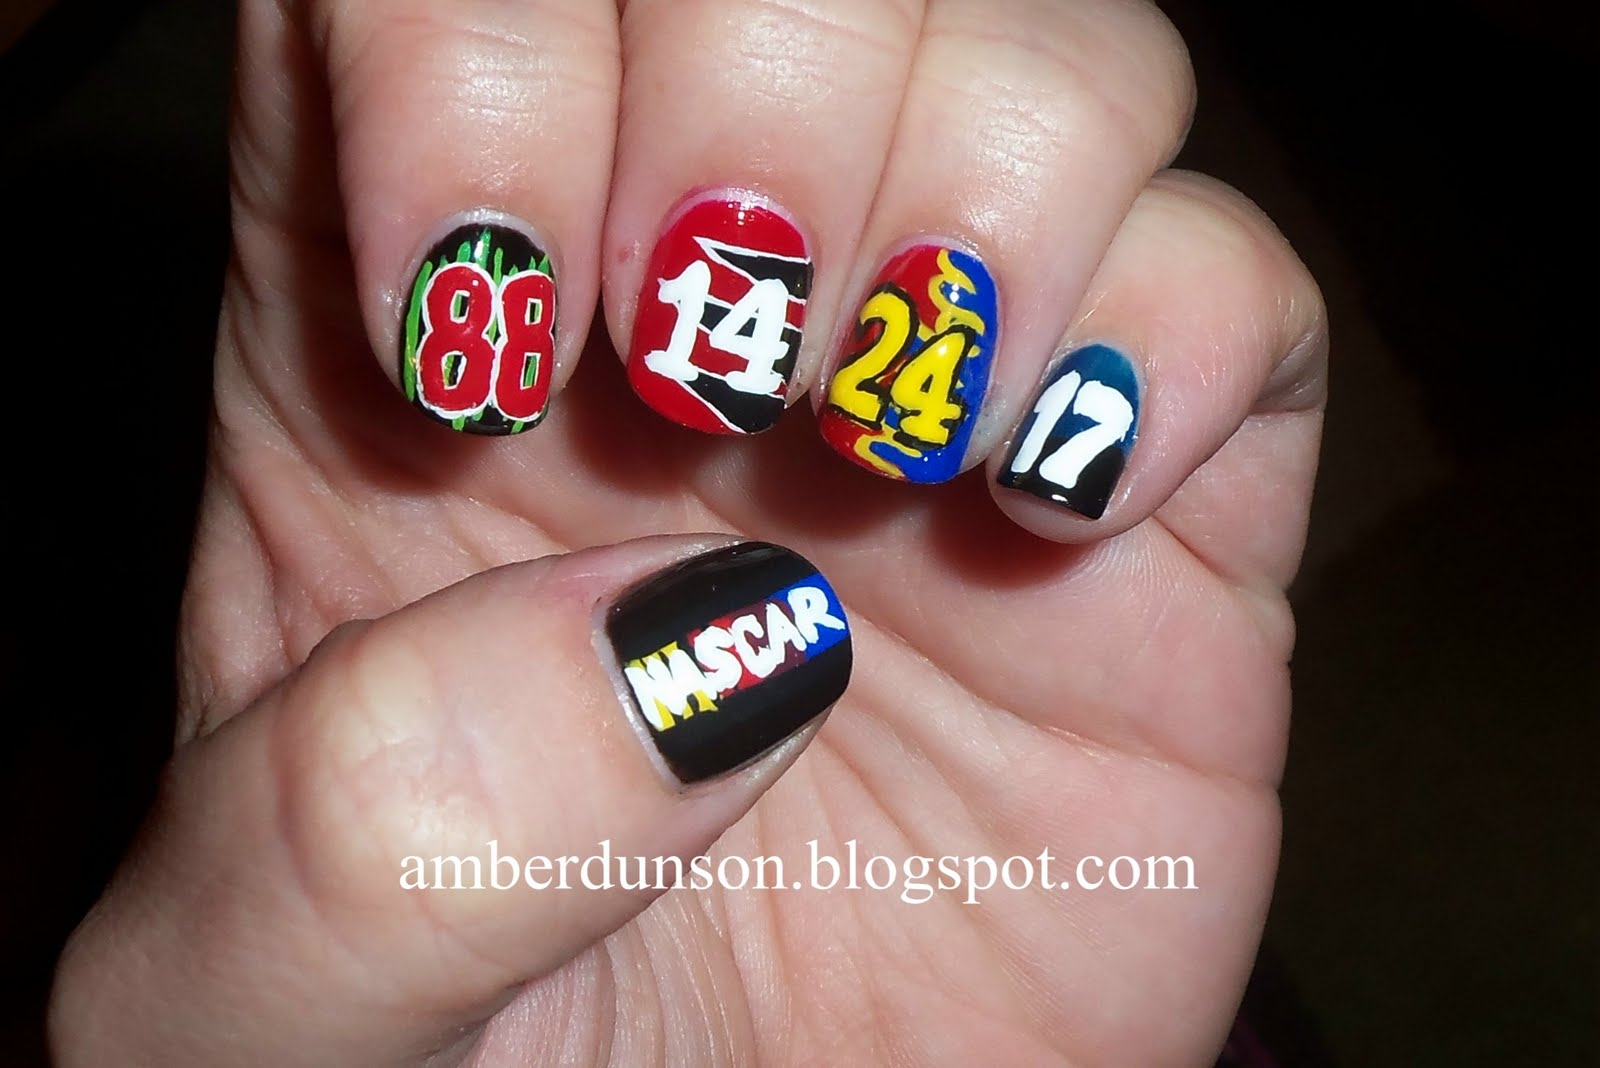 Amber did it!: Nascar Nails!